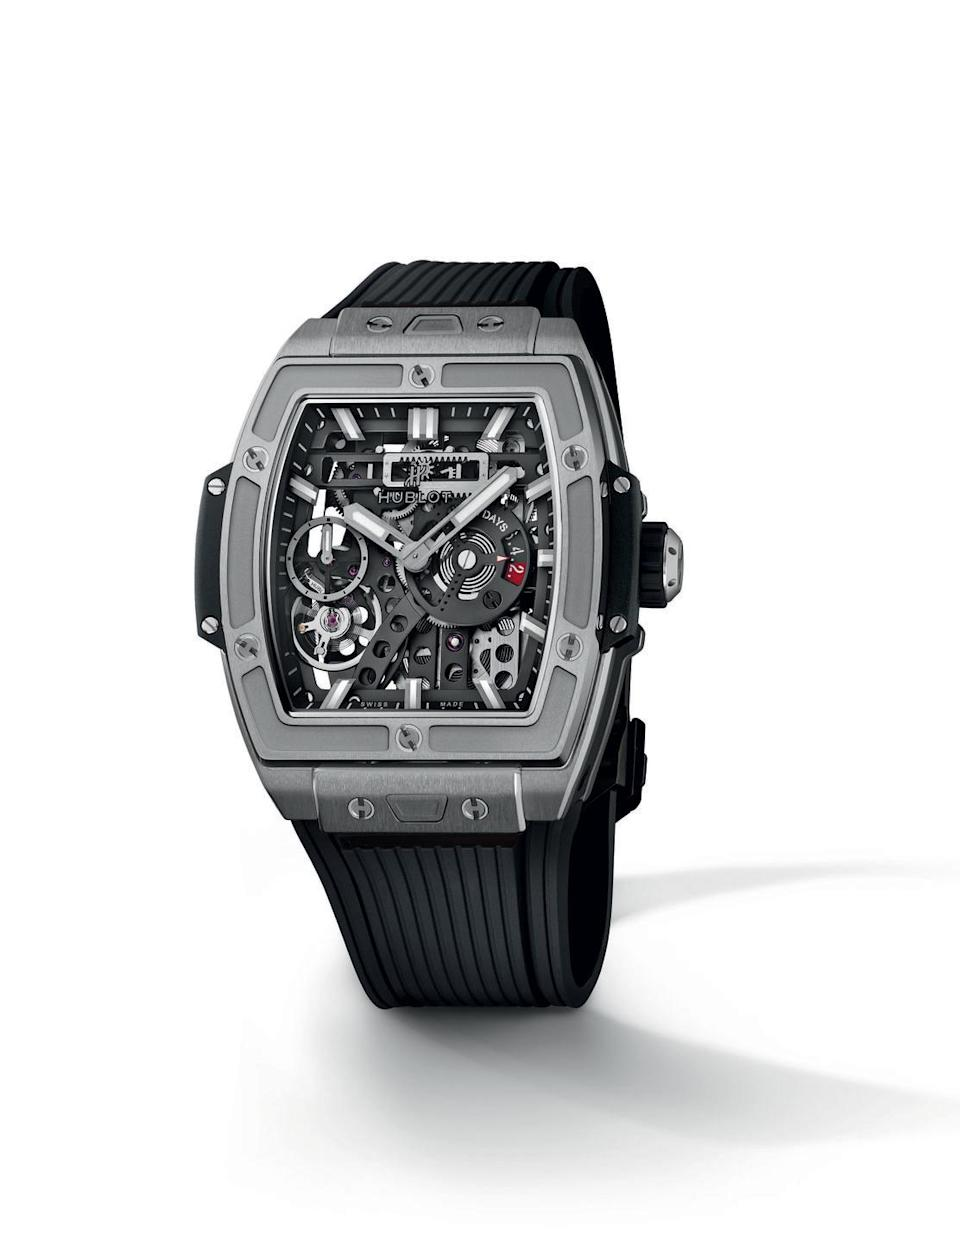 "<p>Hublot Spirit Of Big Bang Meca-10 (release date tba)<br></p><p>There are men's watches, then there are Hublot watches. Available in three versions, titanium, black ceramic and 'king gold' alloy, the Spirit of Big Bang Meca-10 is named after its groundbreaking movement, which packs a 10-day power reserve, and represents one of a handful of strong 2020 releases for the brand. Hublot's peerless technical design chops are visible in the trademark open working, topped off with a trademark chunky rubber strap, making this as impressive as it is unapologetically masculine.</p><p>From £20,000; <a href=""https://www.hublot.com/en/"" rel=""nofollow noopener"" target=""_blank"" data-ylk=""slk:hublot.com"" class=""link rapid-noclick-resp"">hublot.com</a></p>"